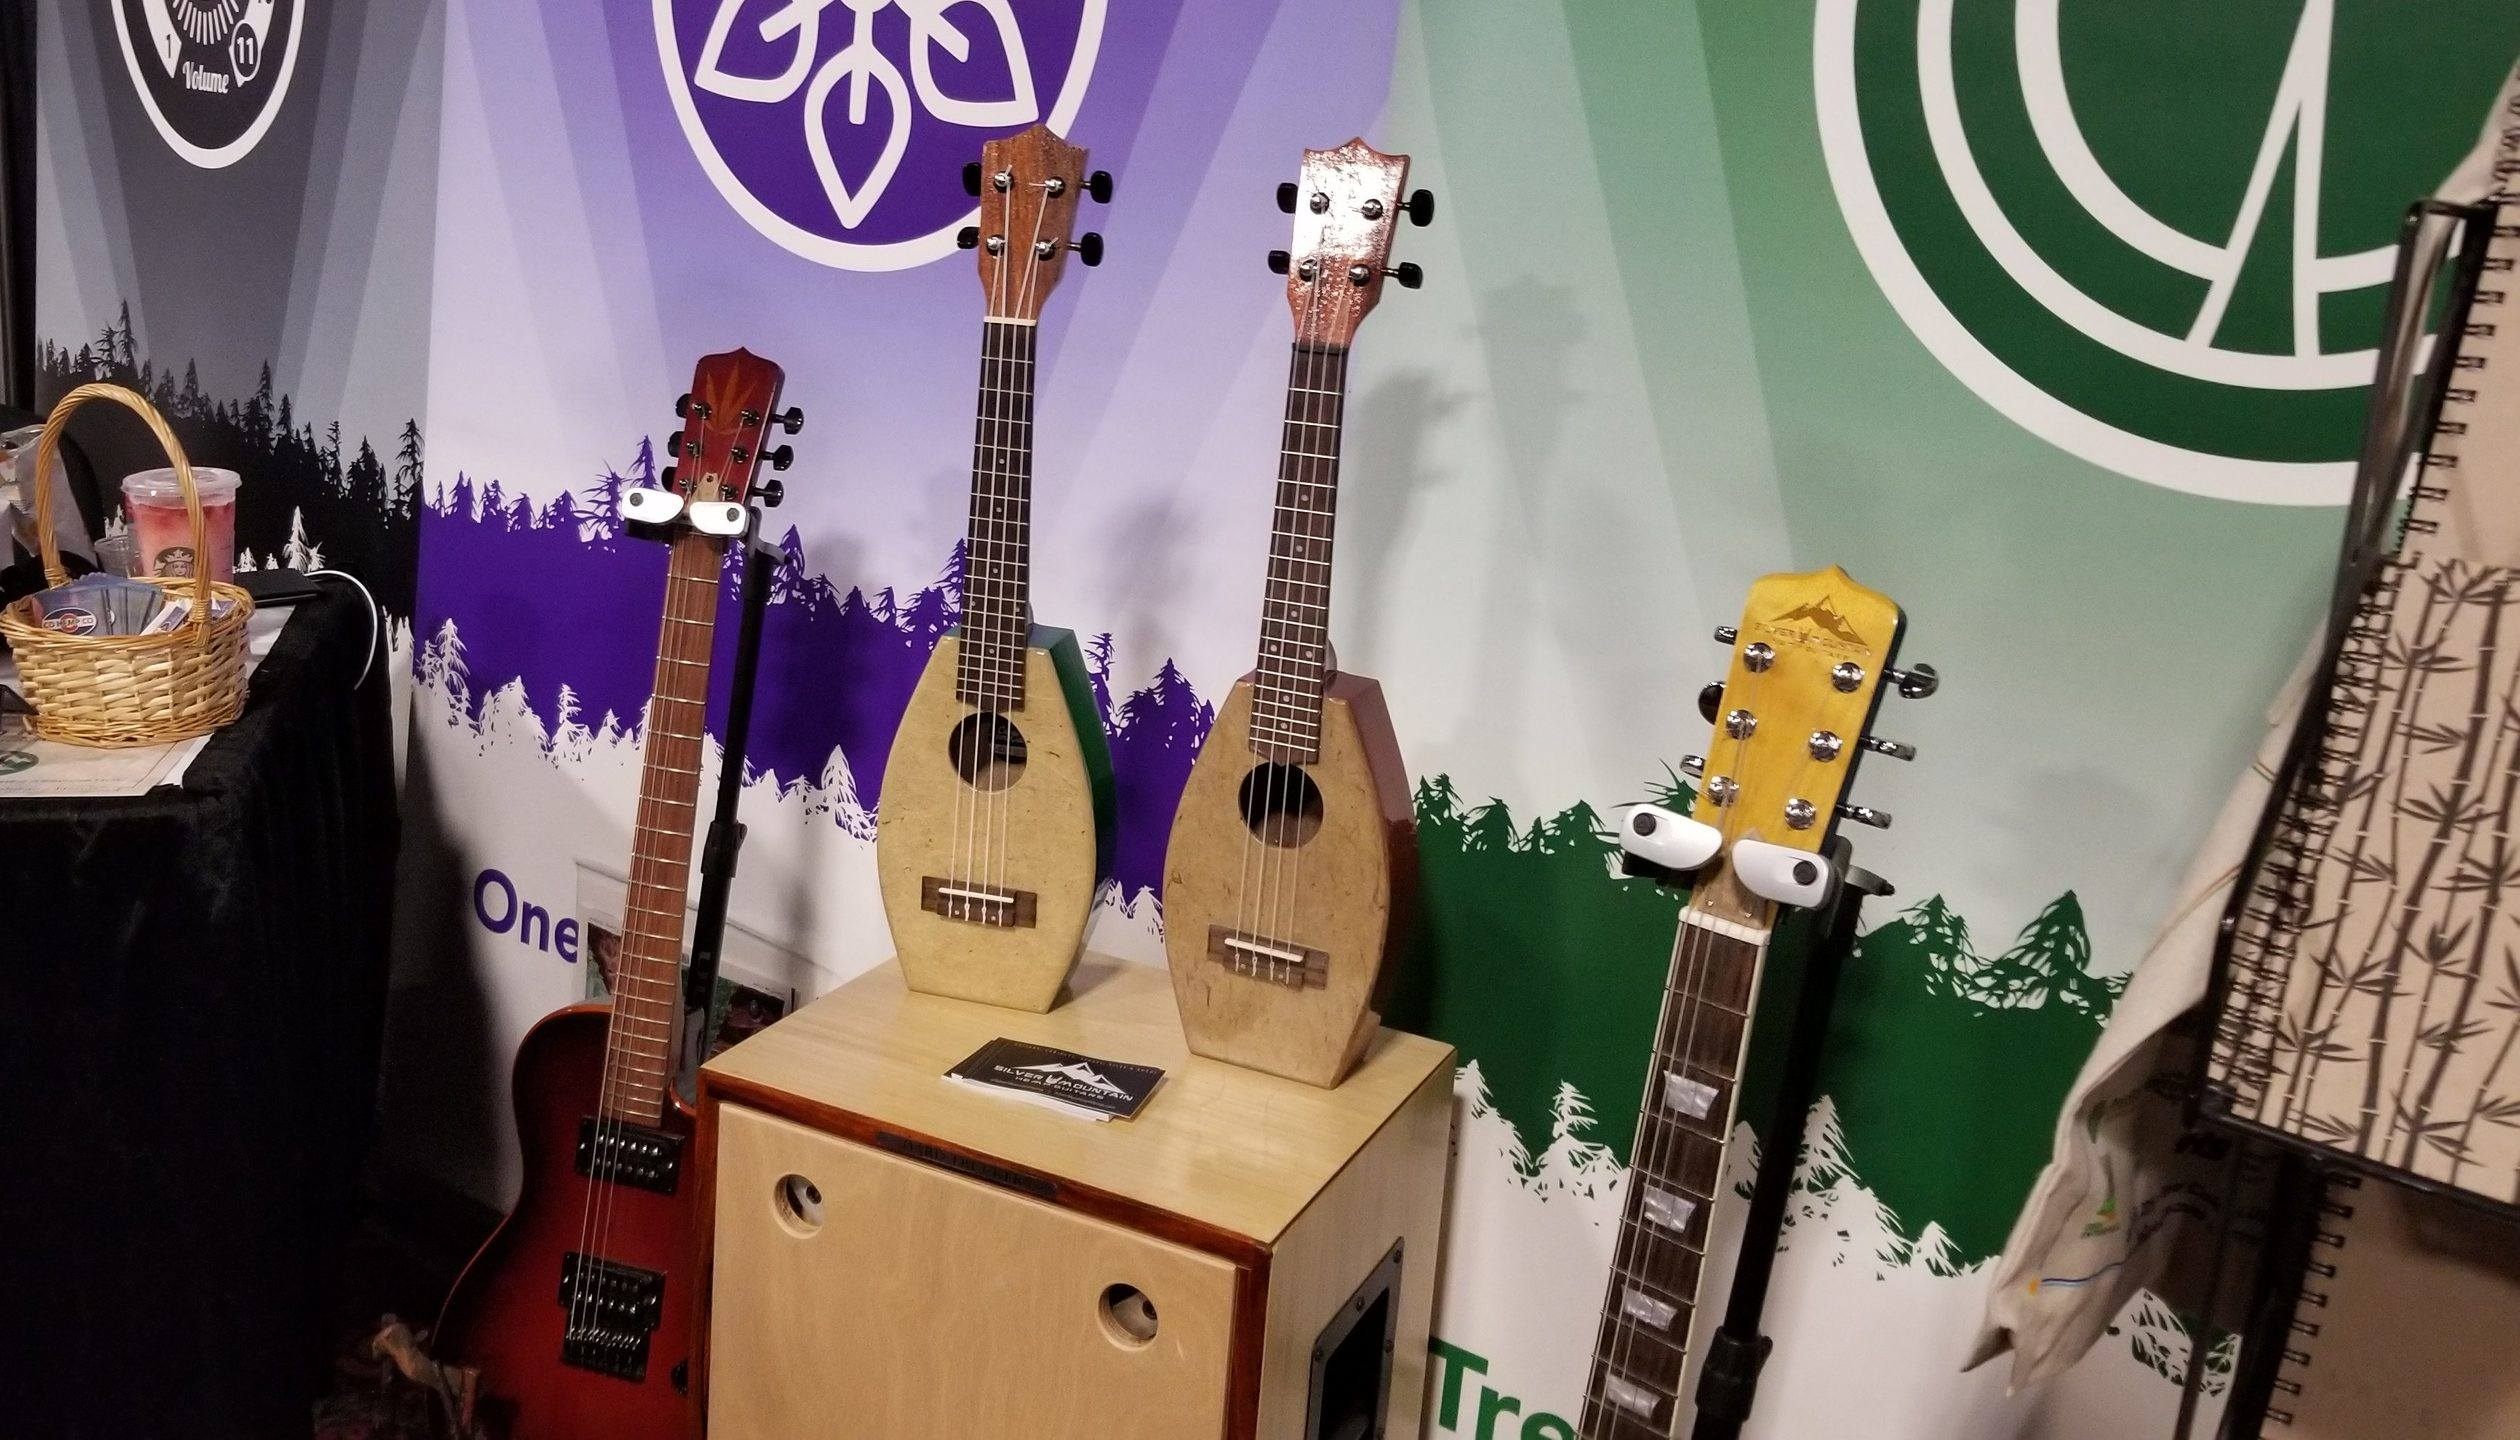 Hemp guitars and a hemp ukelele from Silver Mountain Hemp Guitars, on display at NoCo 6, the 2019 Noco Hemp Expo in Denver, Colorado.